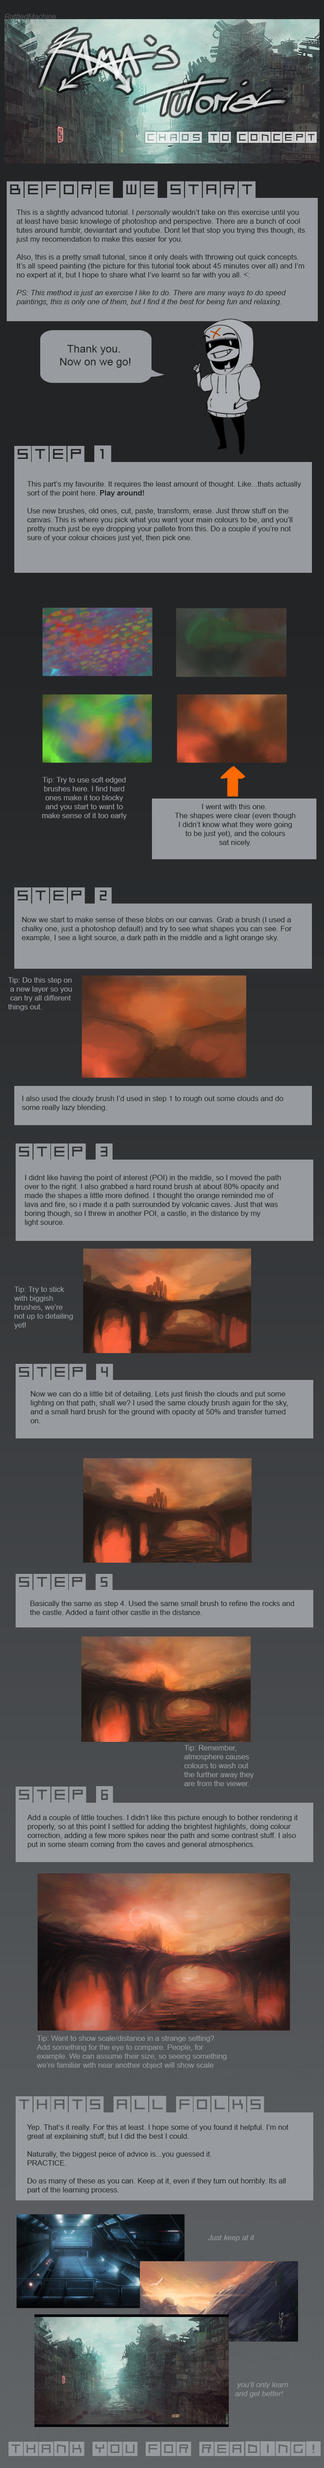 Speed painting Tutorial by RattledMachine